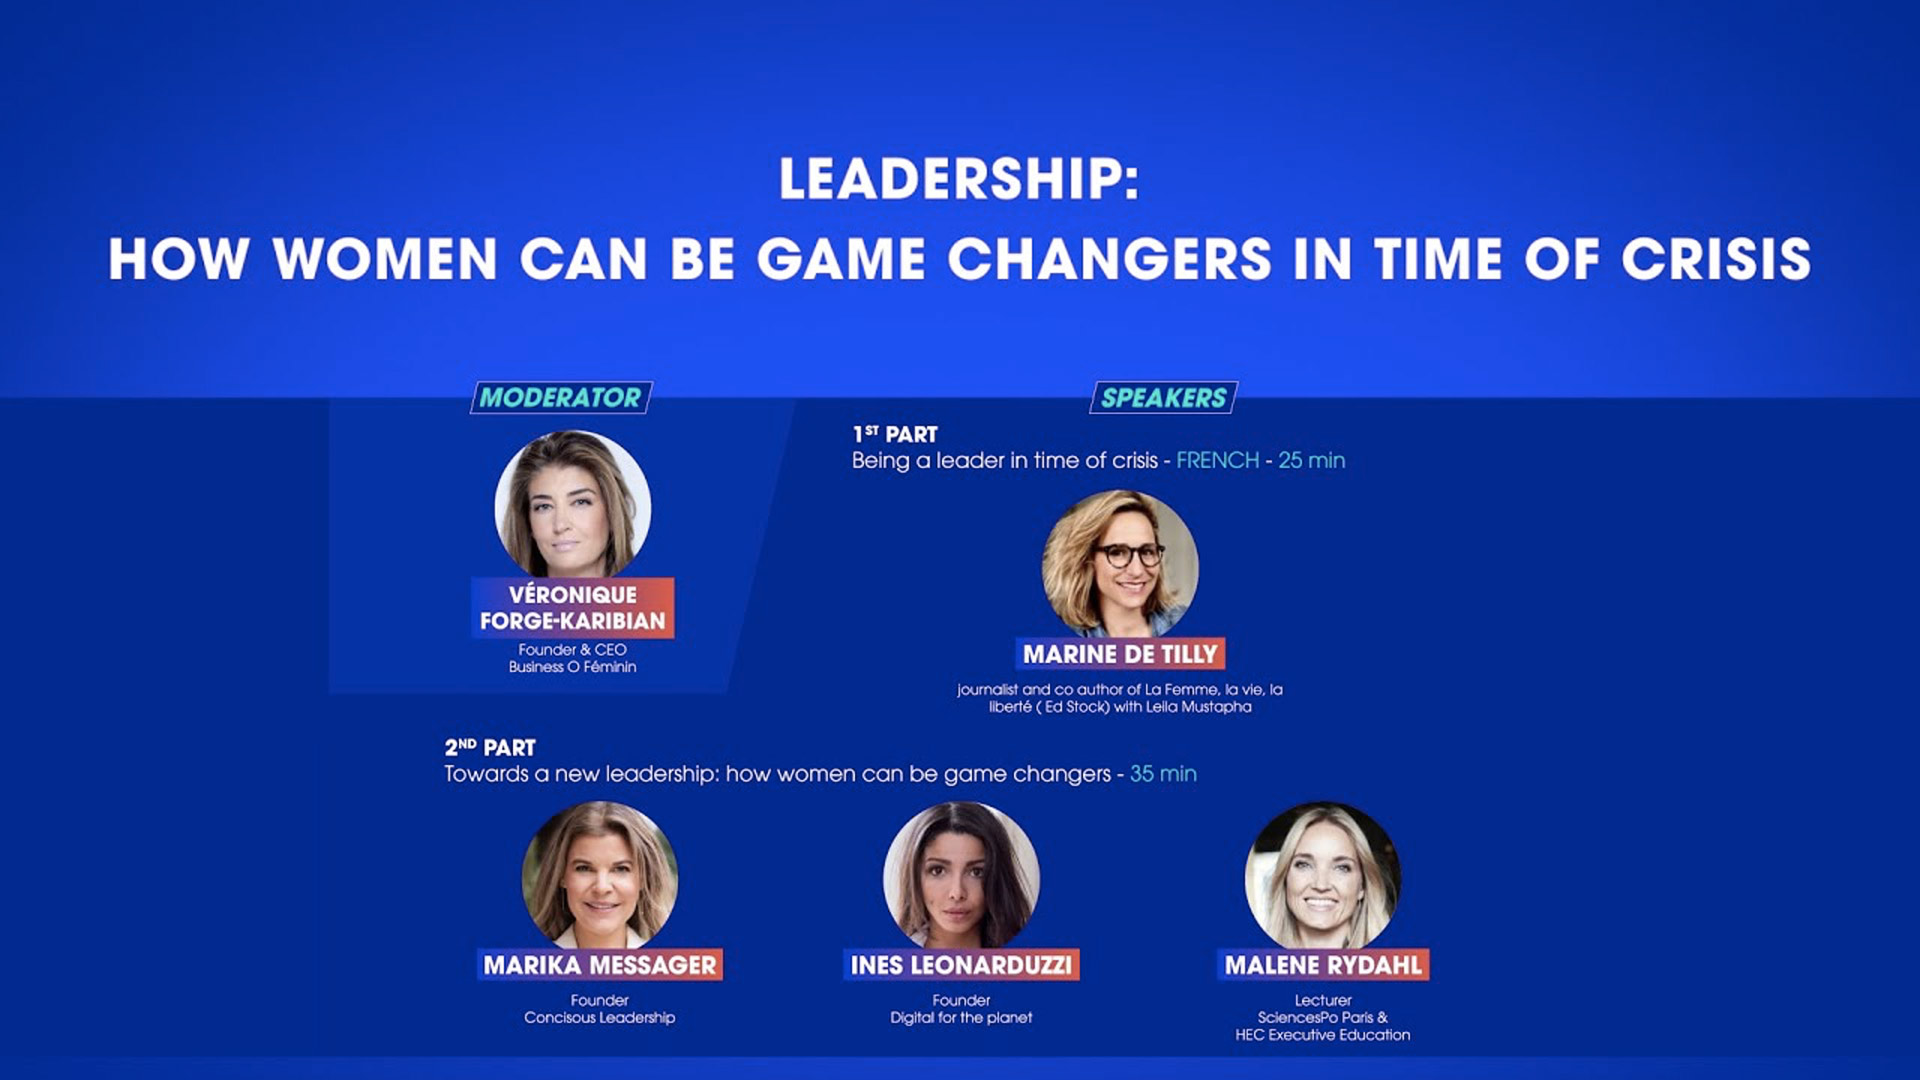 Leadership: How women can be game changers in time of crisis